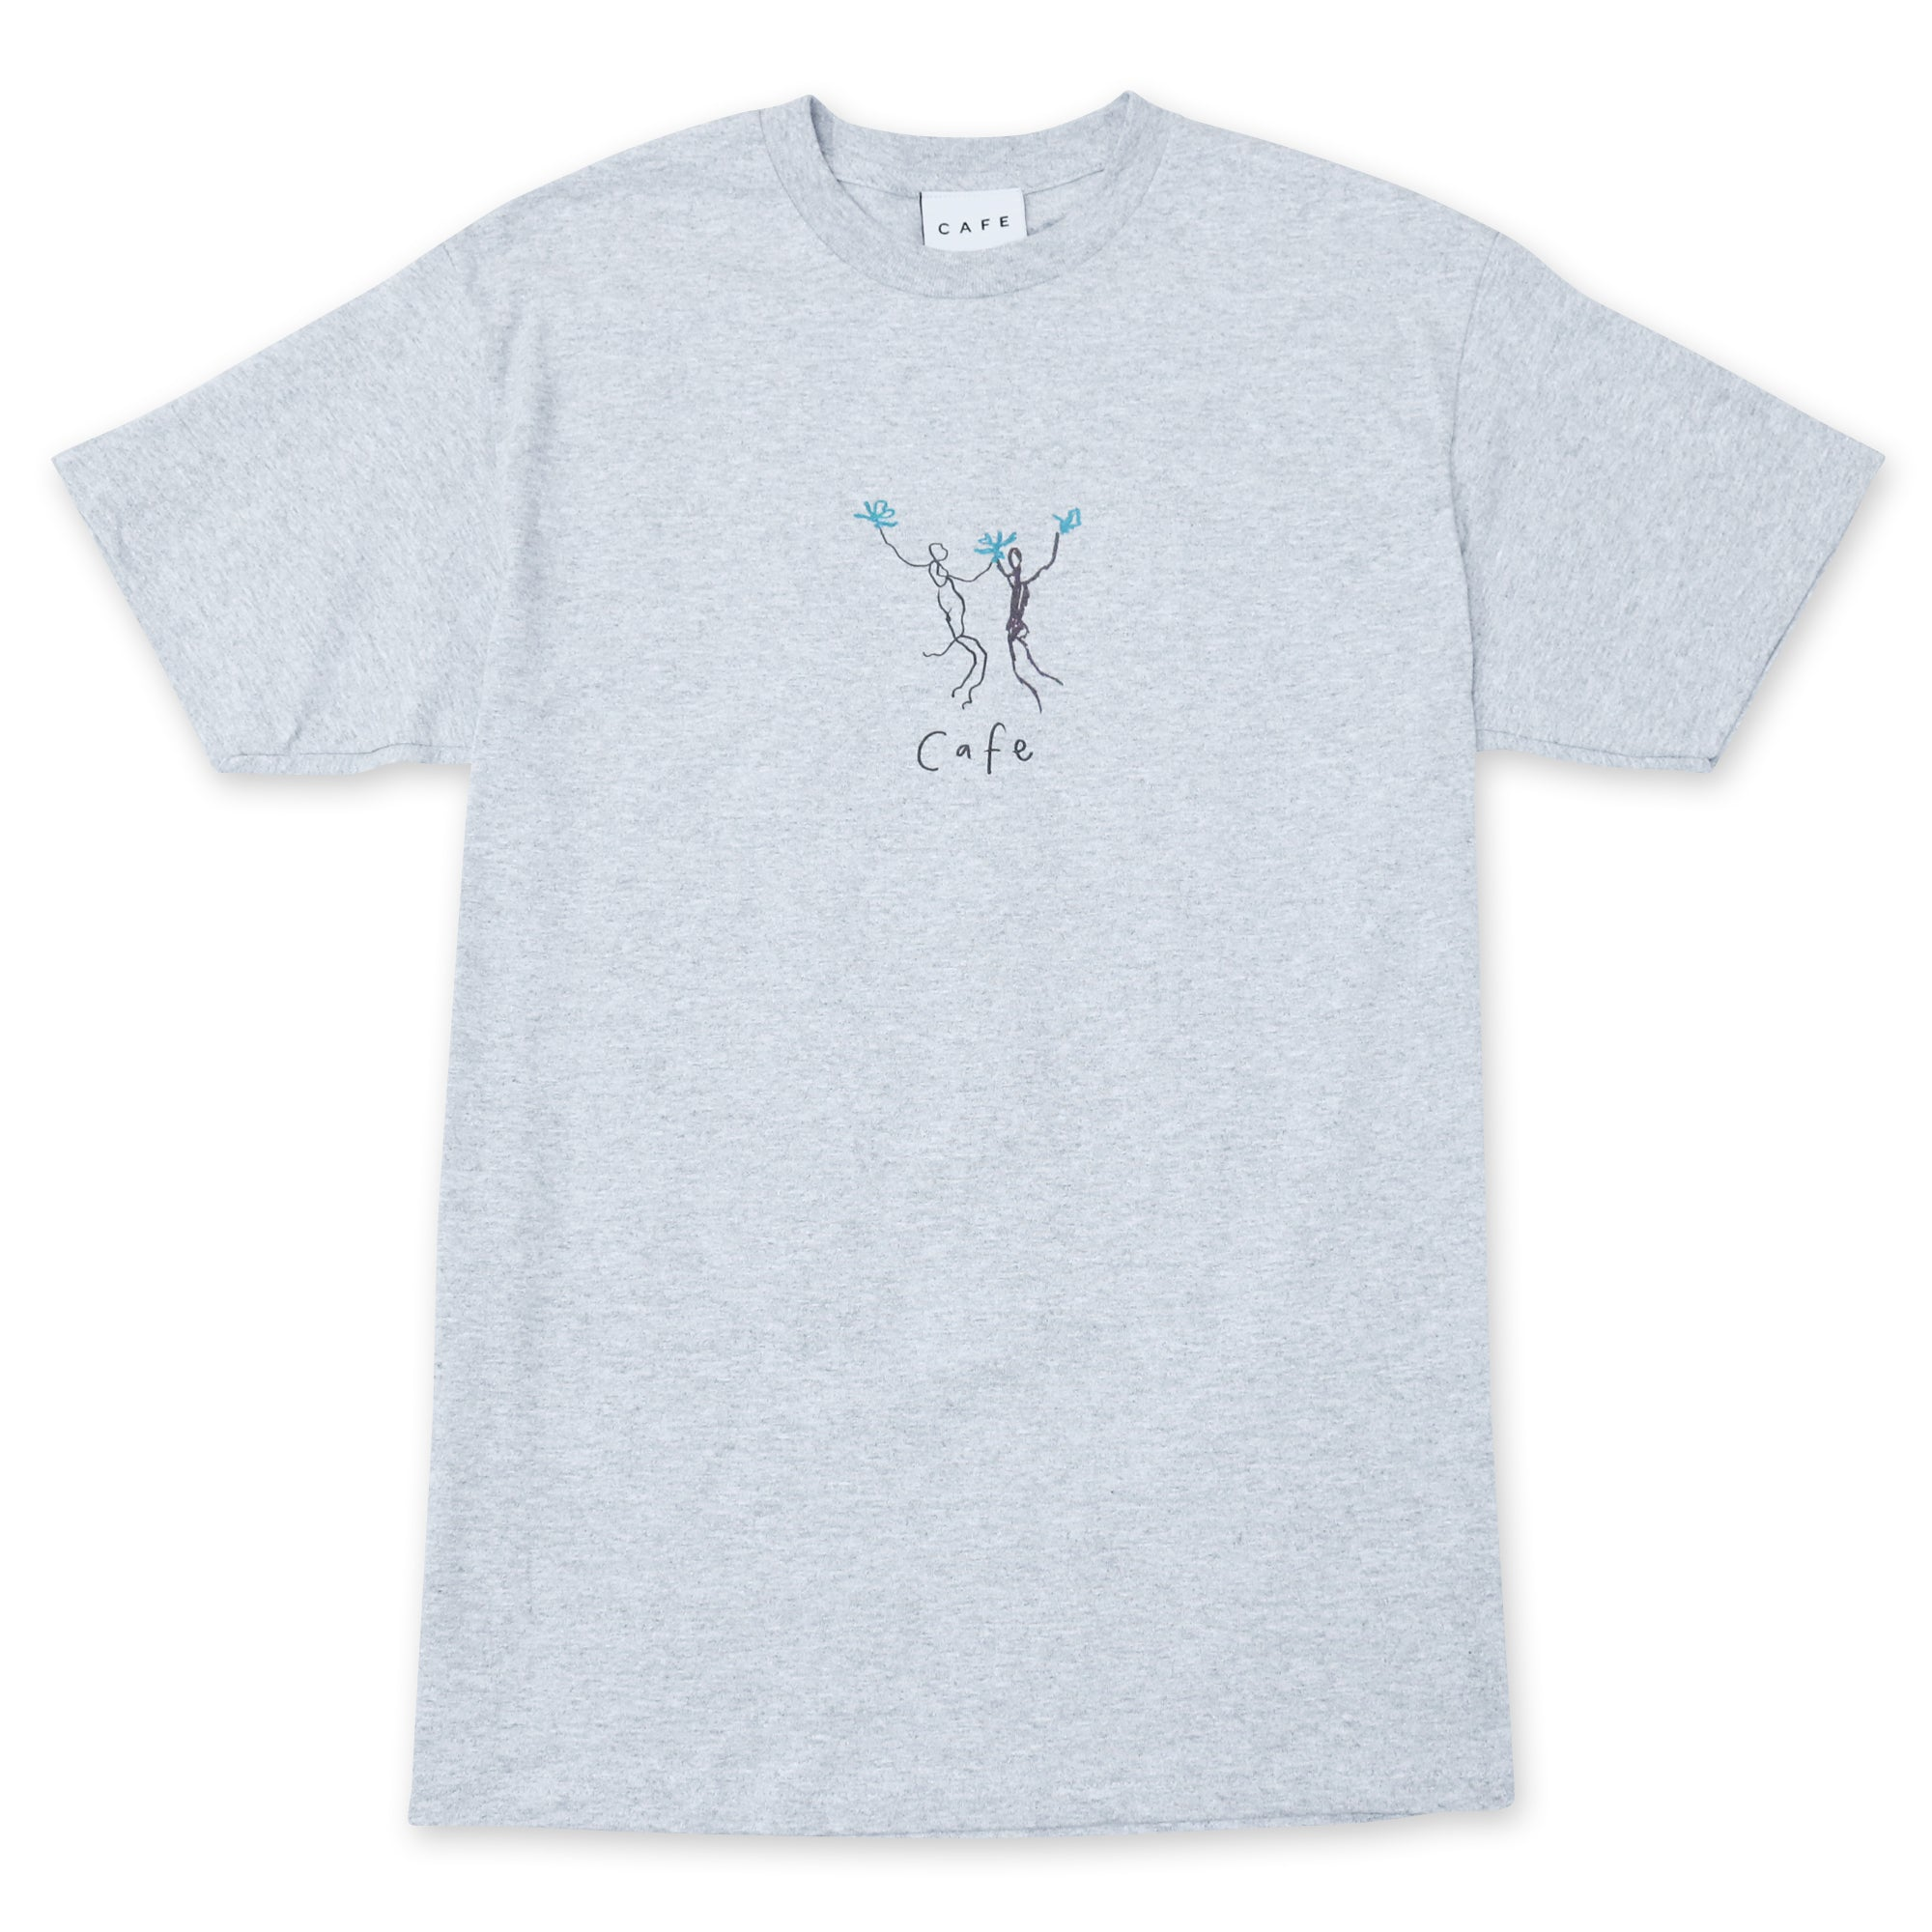 Skateboard Café Unity T-Shirt - Heather Grey